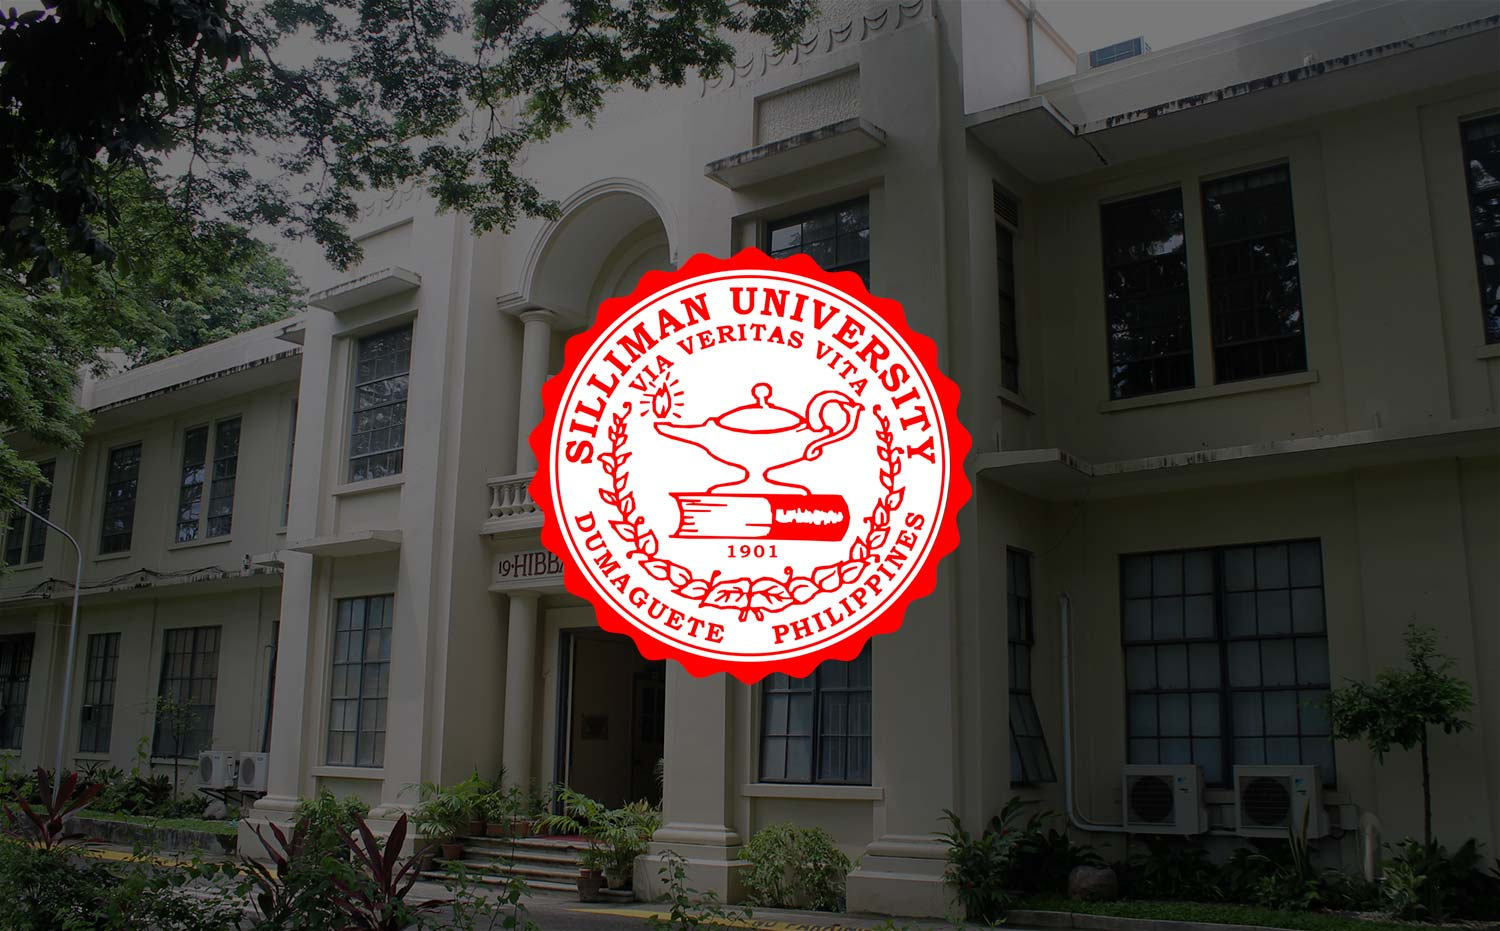 16 New Licensed Civil Engineers for Silliman